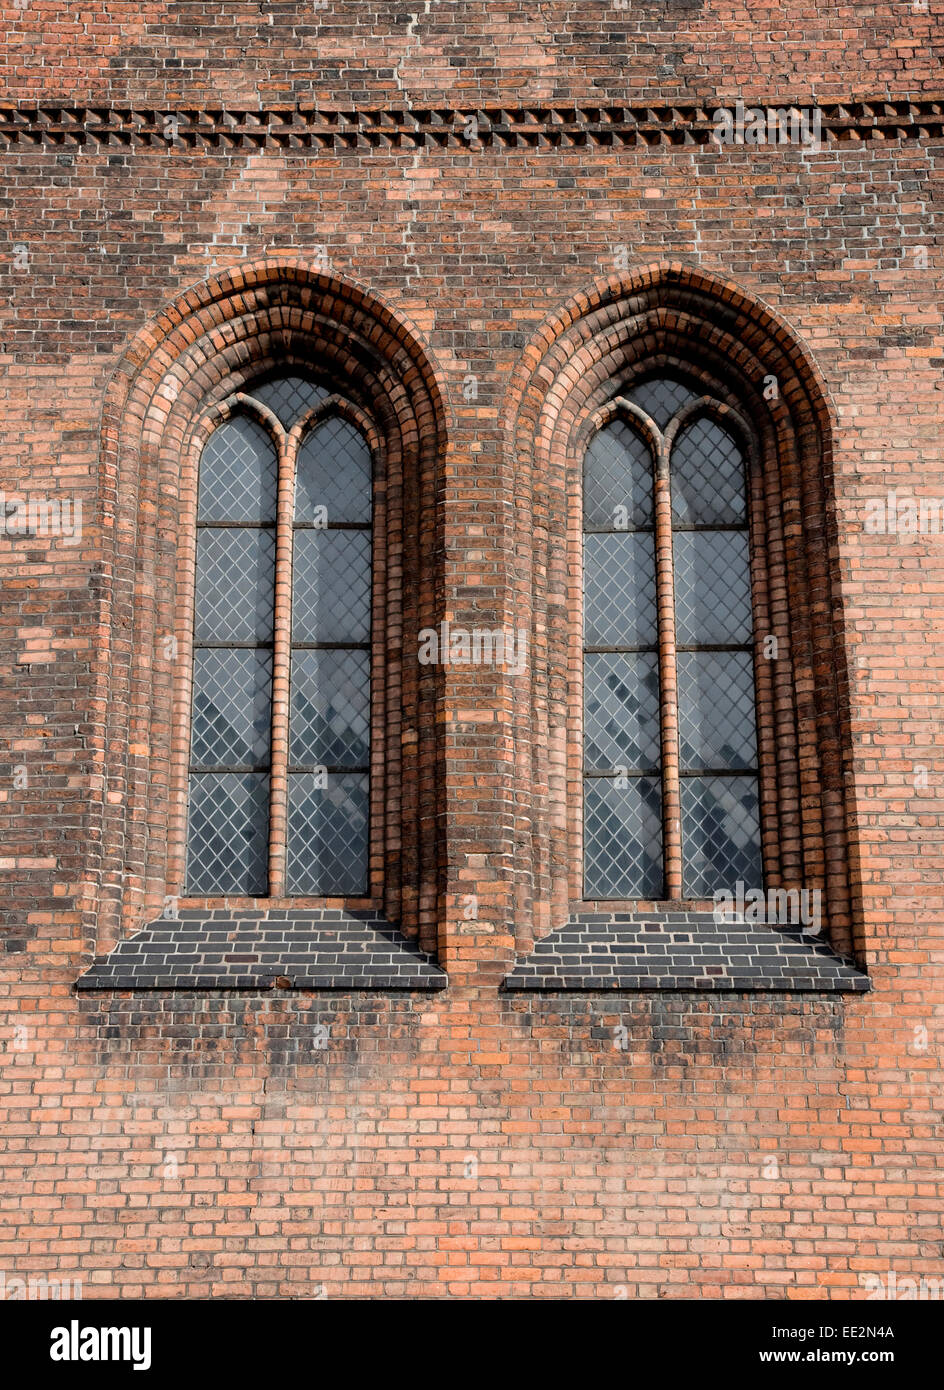 Leaded windows at the Cathedral at Aarhus, Denmark - Stock Image